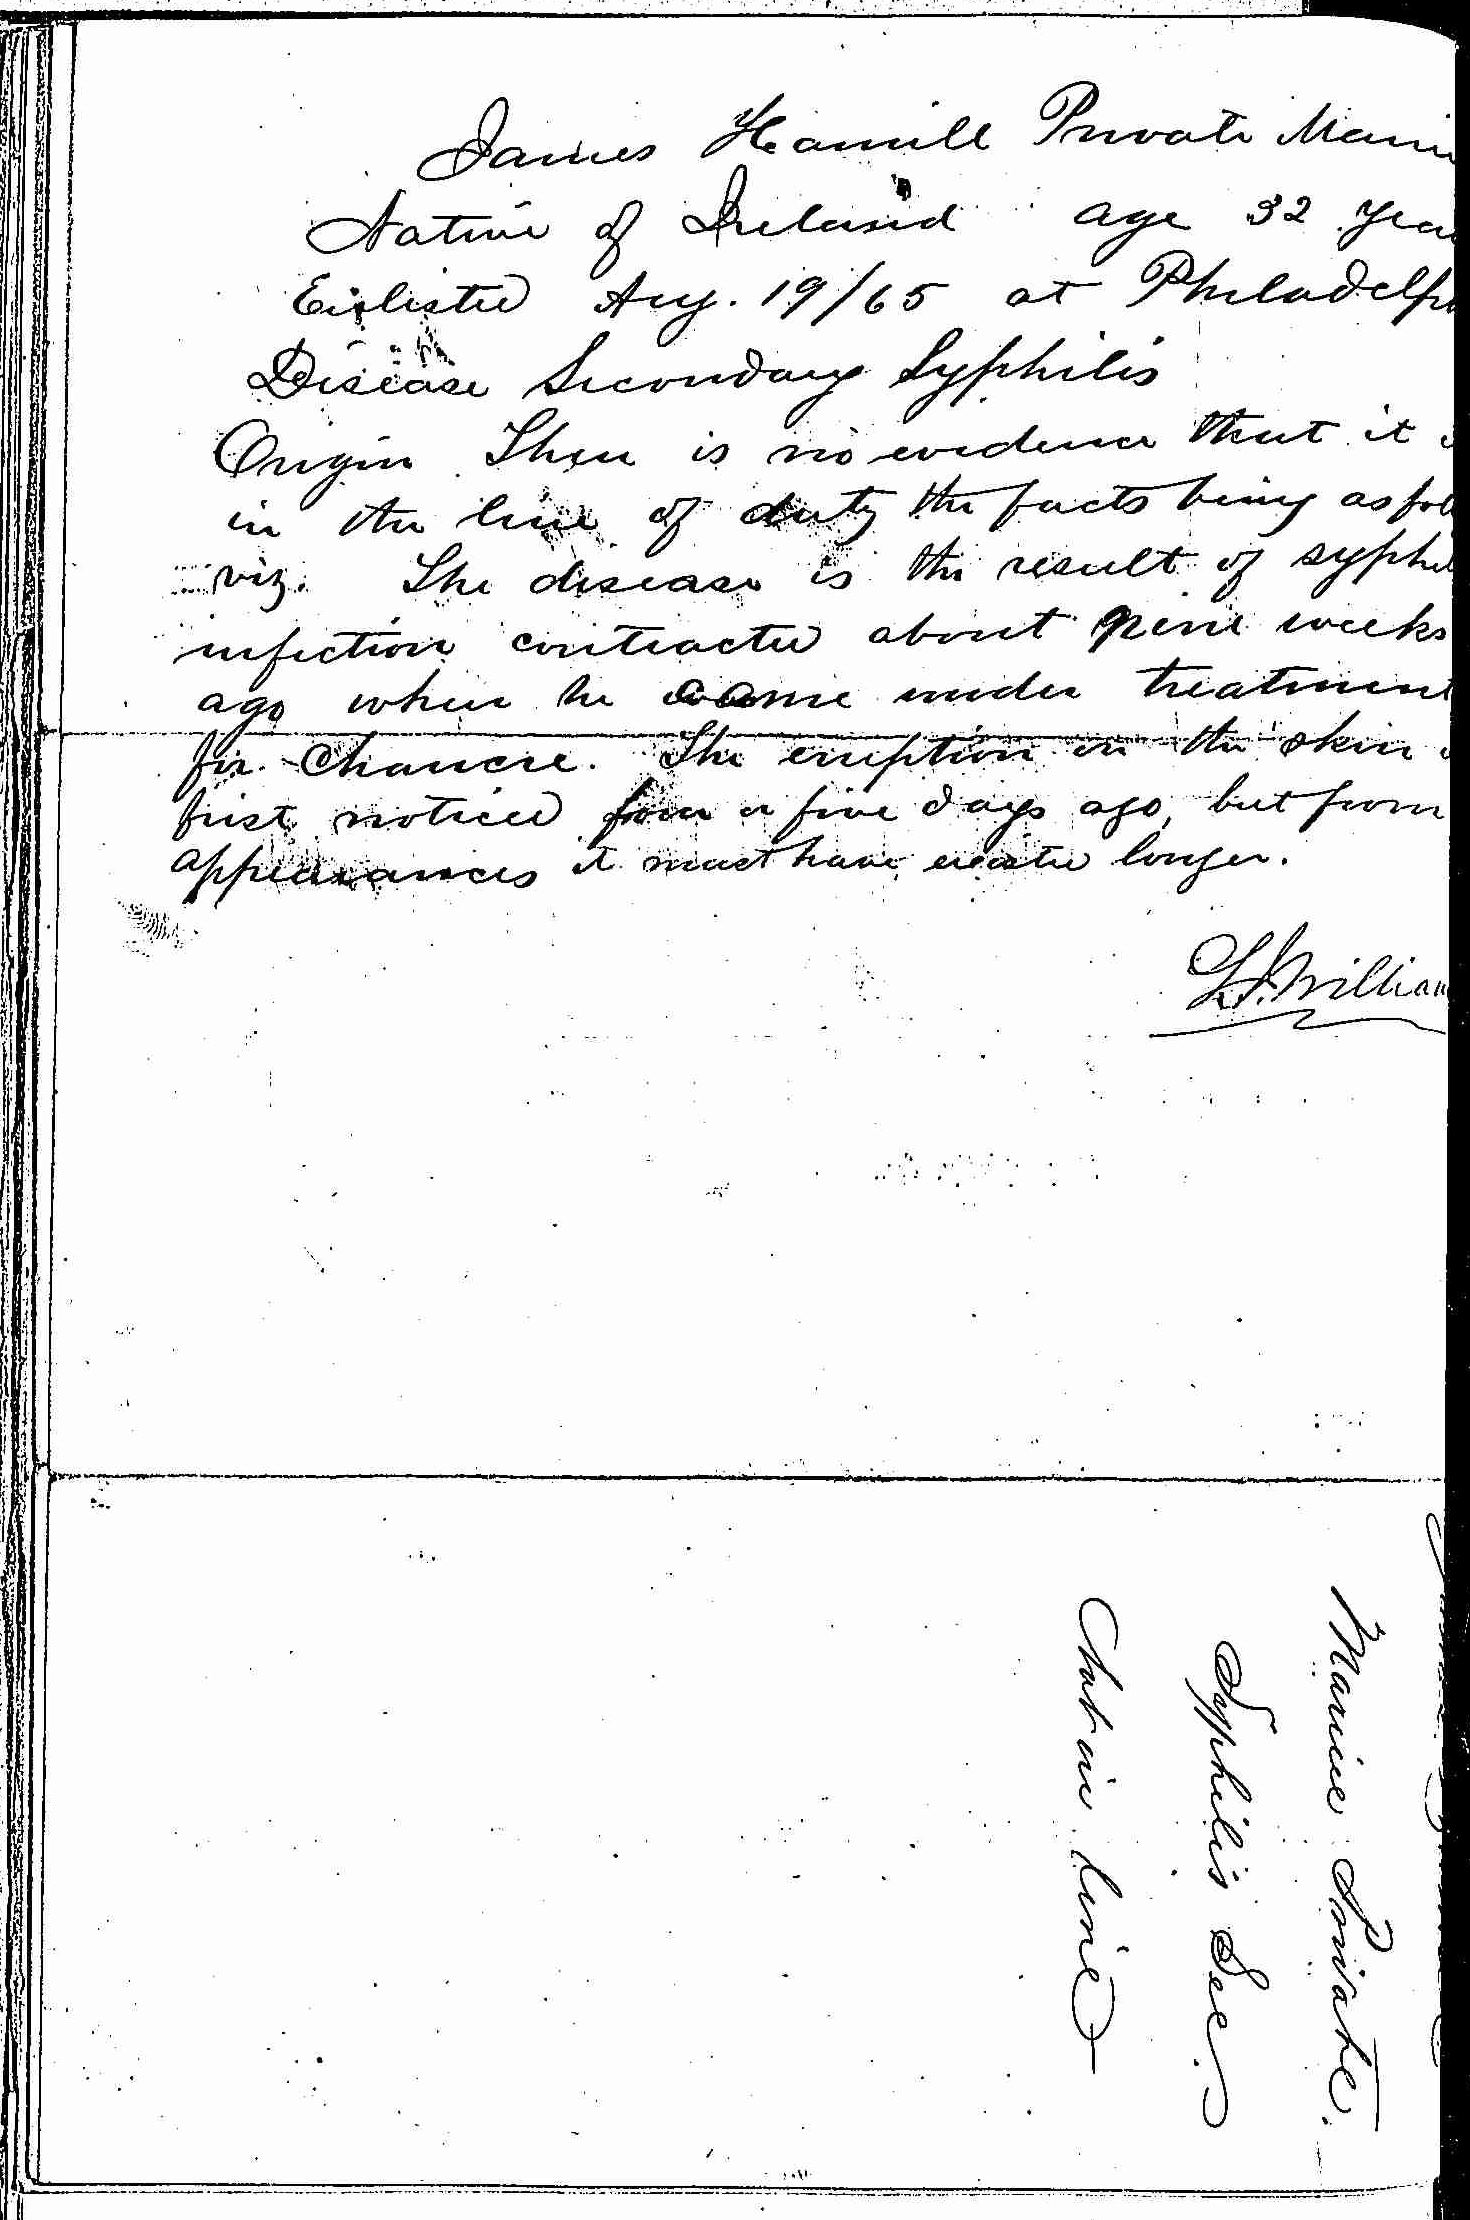 Entry for James Hamill (page 2 of 2) in the log Hospital Tickets and Case Papers - Naval Hospital - Washington, D.C. - 1866-68